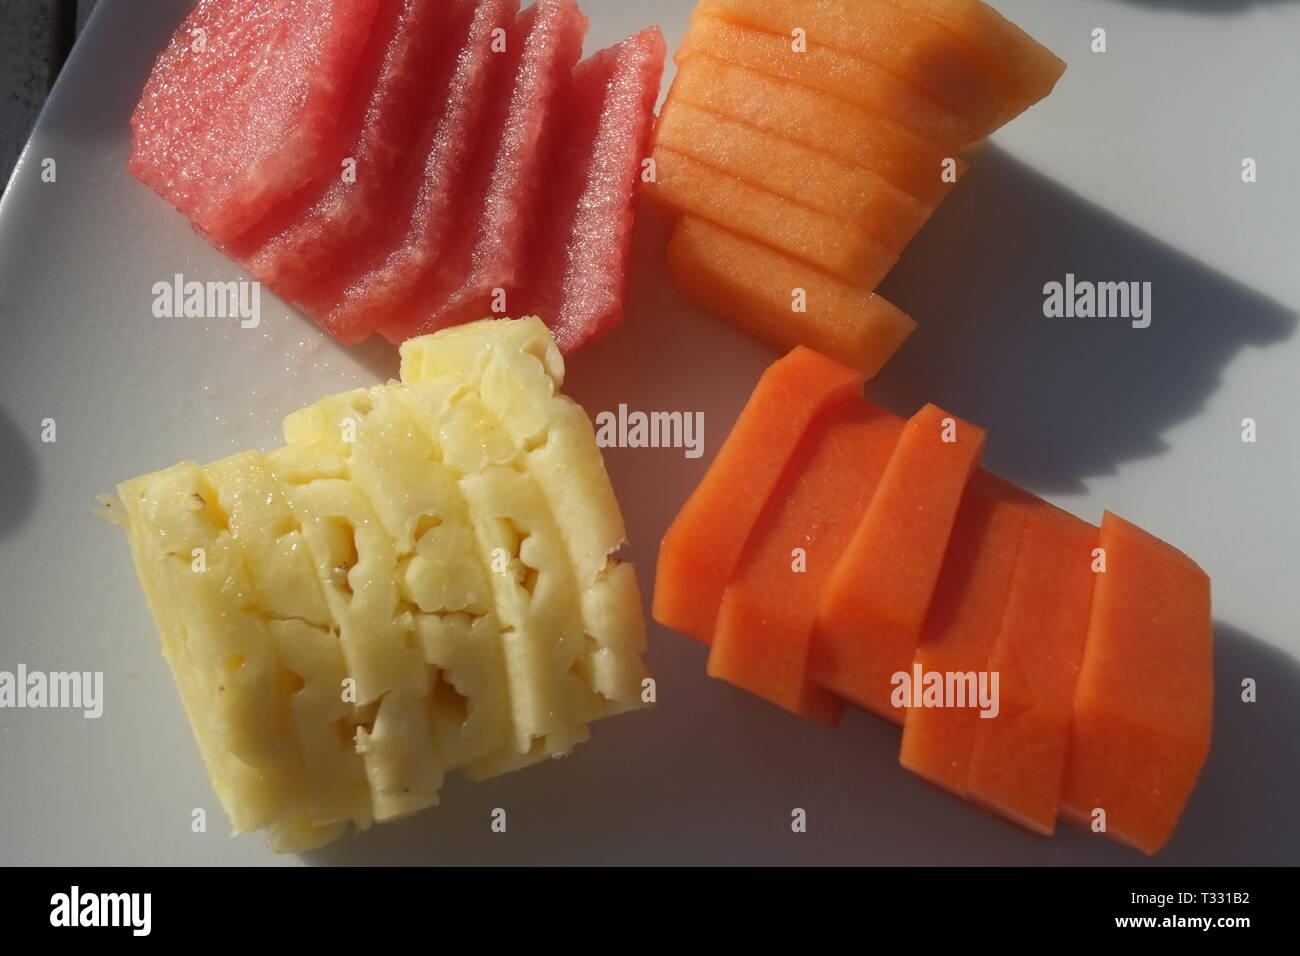 Fruit Mango Pineapple Water Melon And Cantaloupe Served For Breakfast At Playa Del Carmen Mexico Stock Photo Alamy It's also a good source of use tap water and a vegetable brush. https www alamy com fruit mango pineapple water melon and cantaloupe served for breakfast at playa del carmen mexico image242856070 html